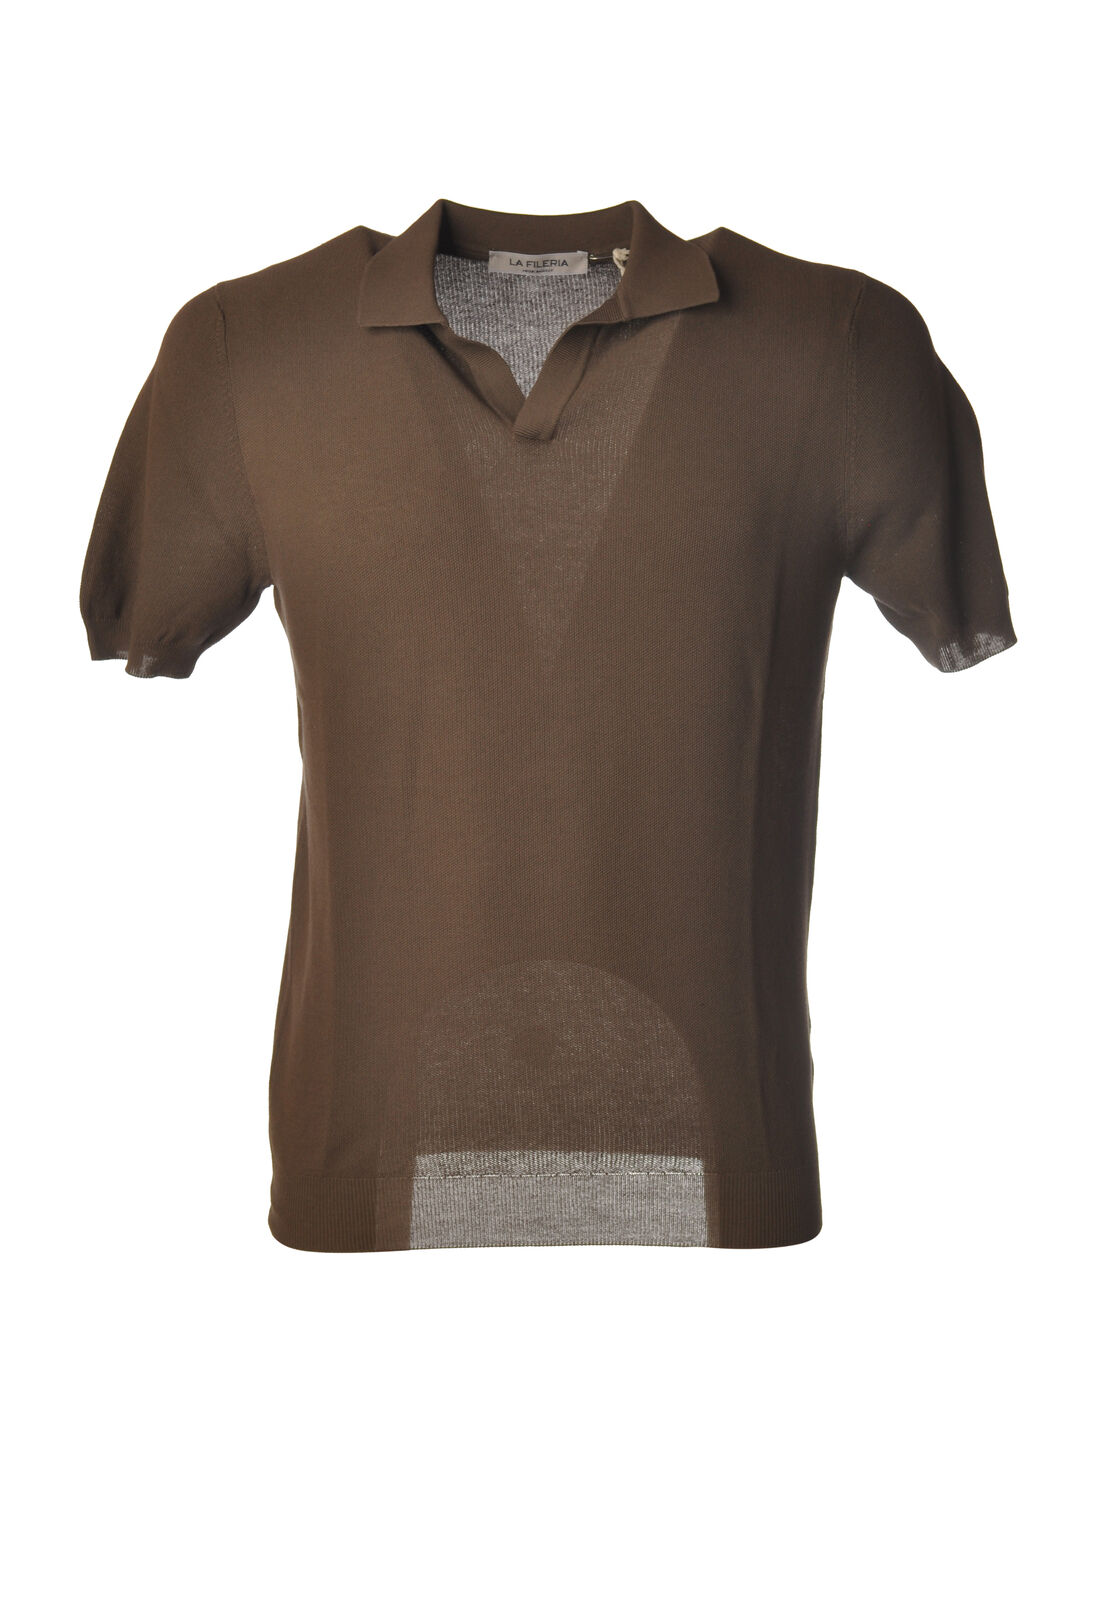 LA FILERIA - Topwear Polo - Mann - Beige - 6072418C191233